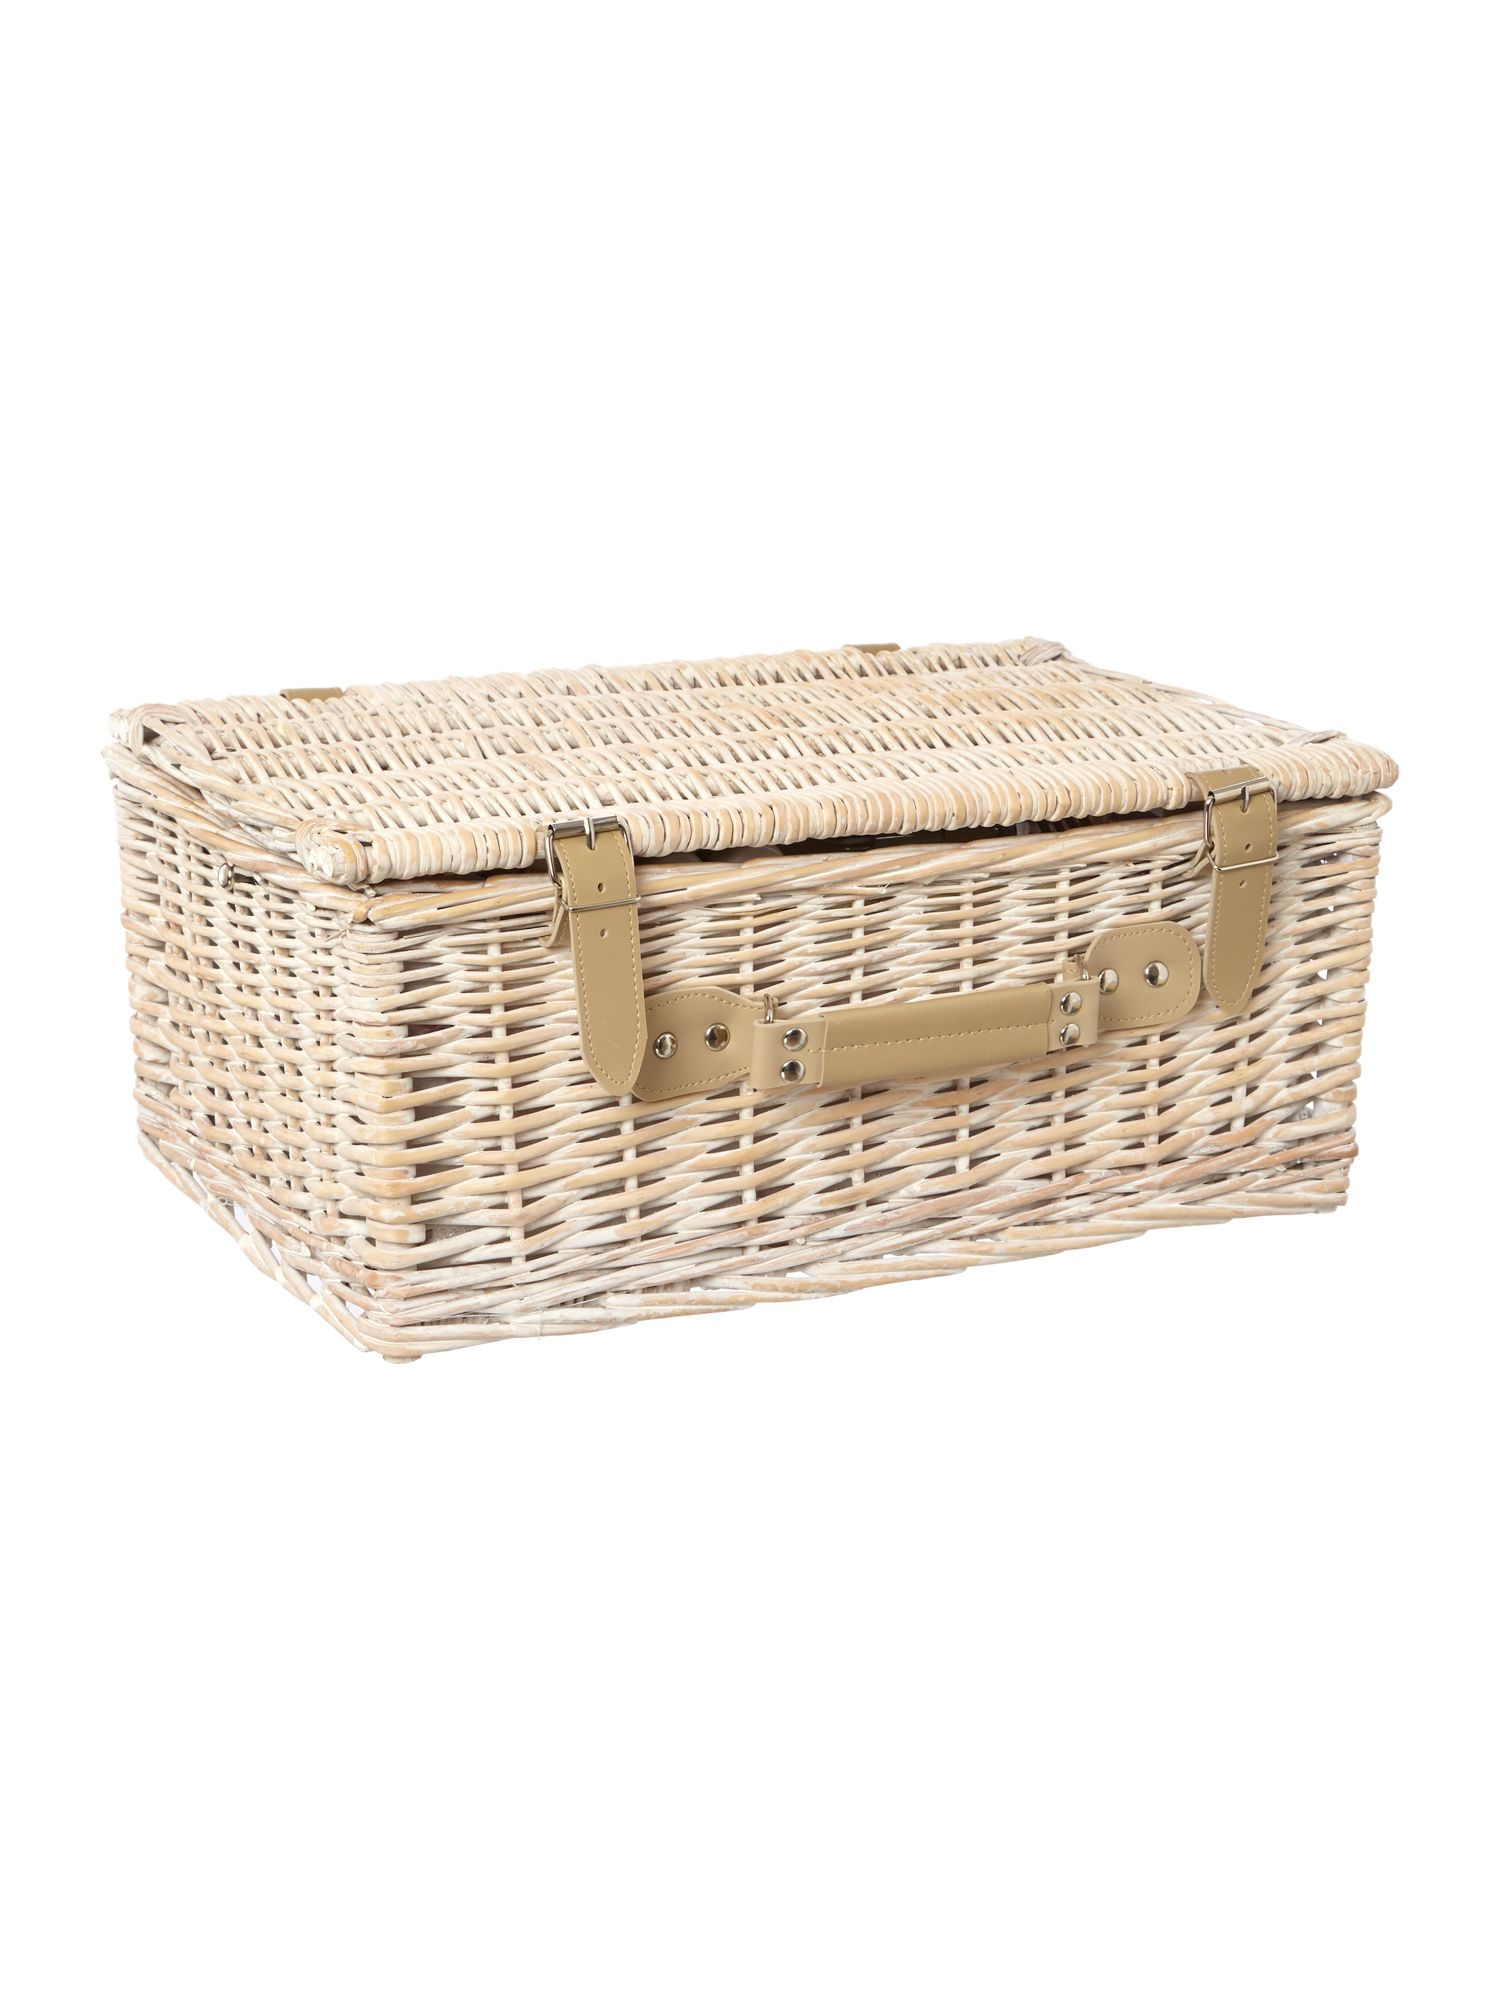 Meadow floral 2 person hamper